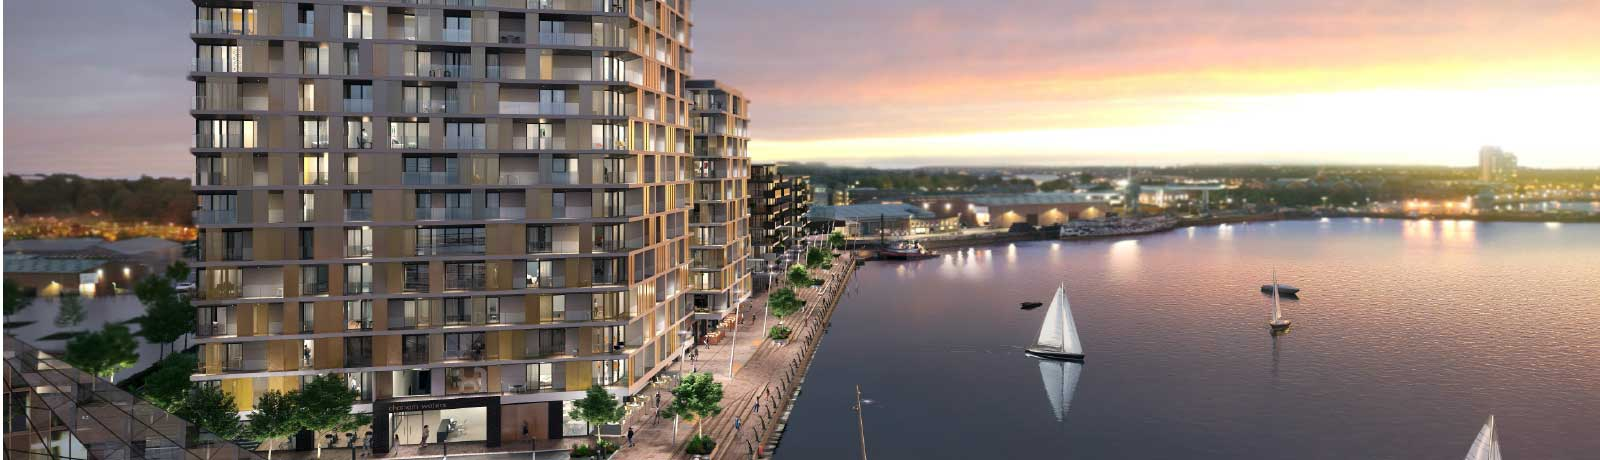 A GLOBAL REPUTATION FOR LUXURIOUS AND STYLISH WATERSIDE DEVELOPMENTS